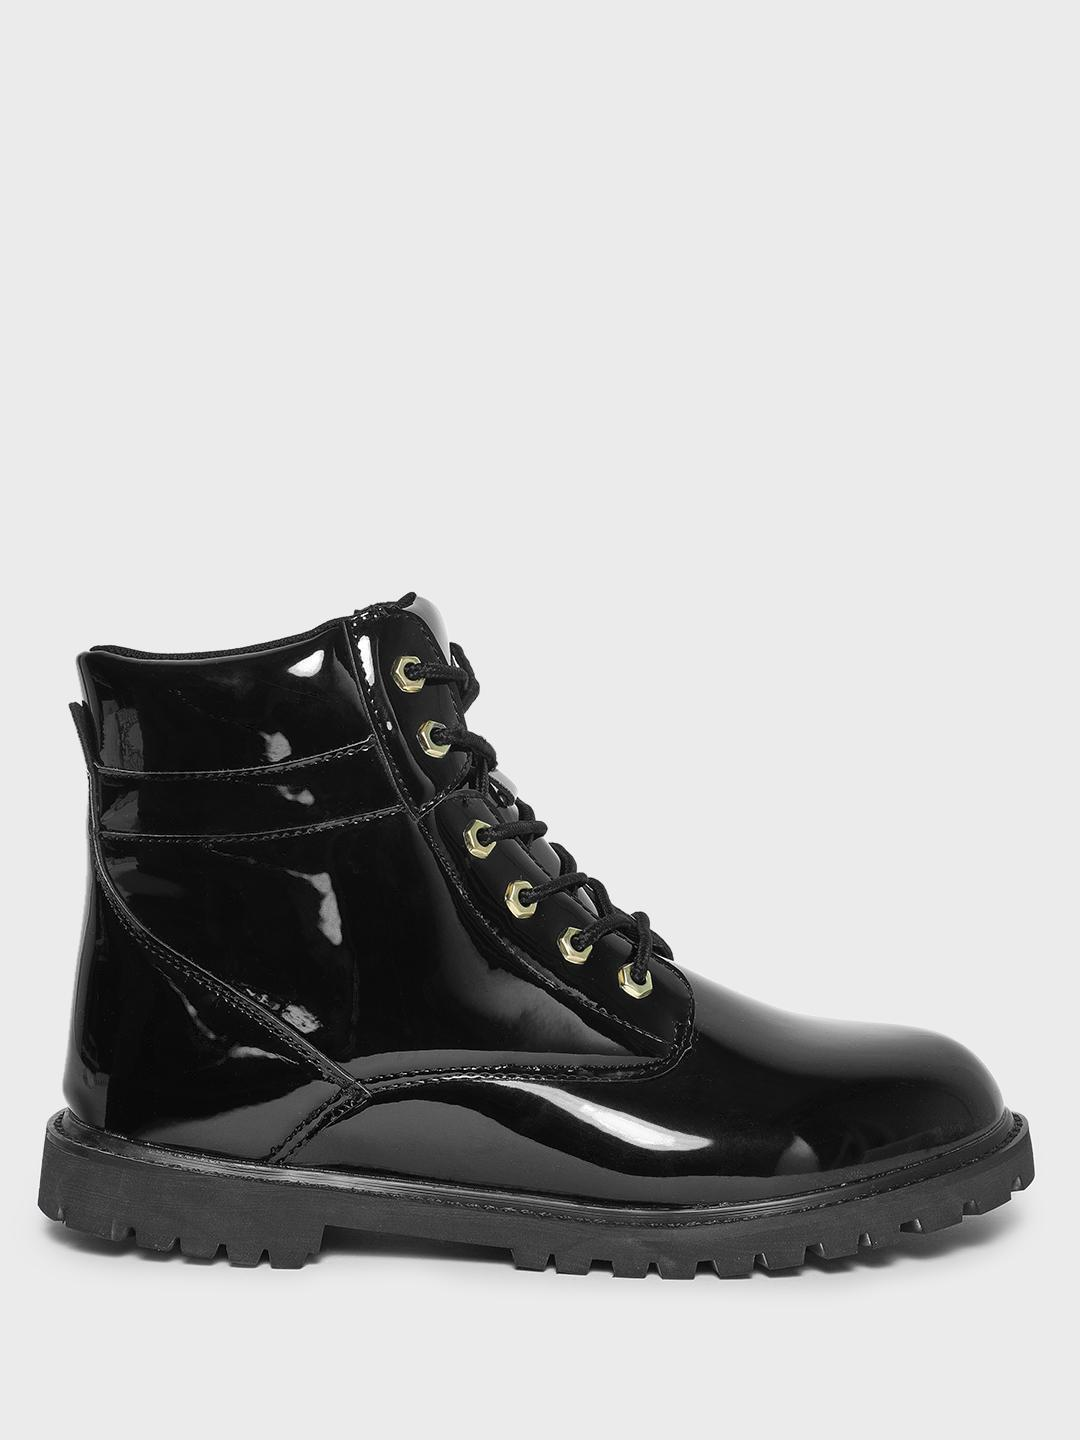 KOOVS Black Cleated Sole Lace-Up Boots 1